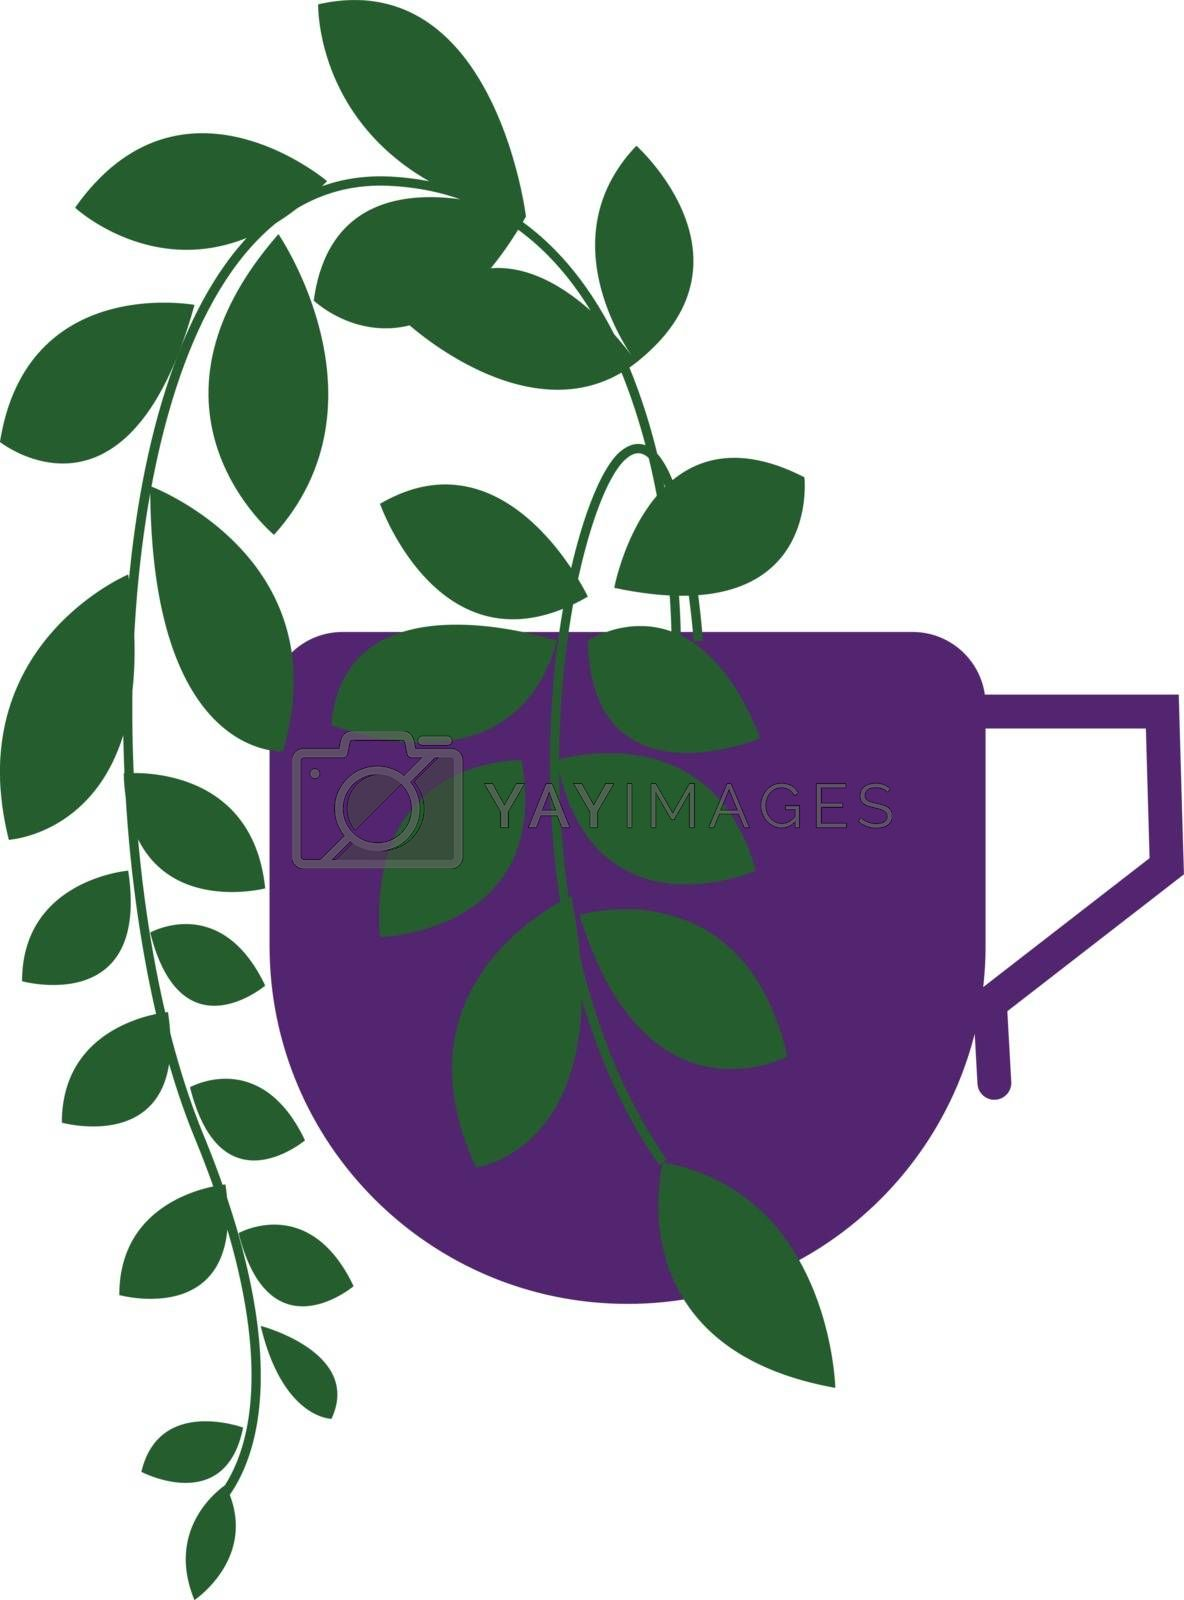 Royalty free image of Clipart of a creepy little plant grown on a coffee cup vector or by Morphart